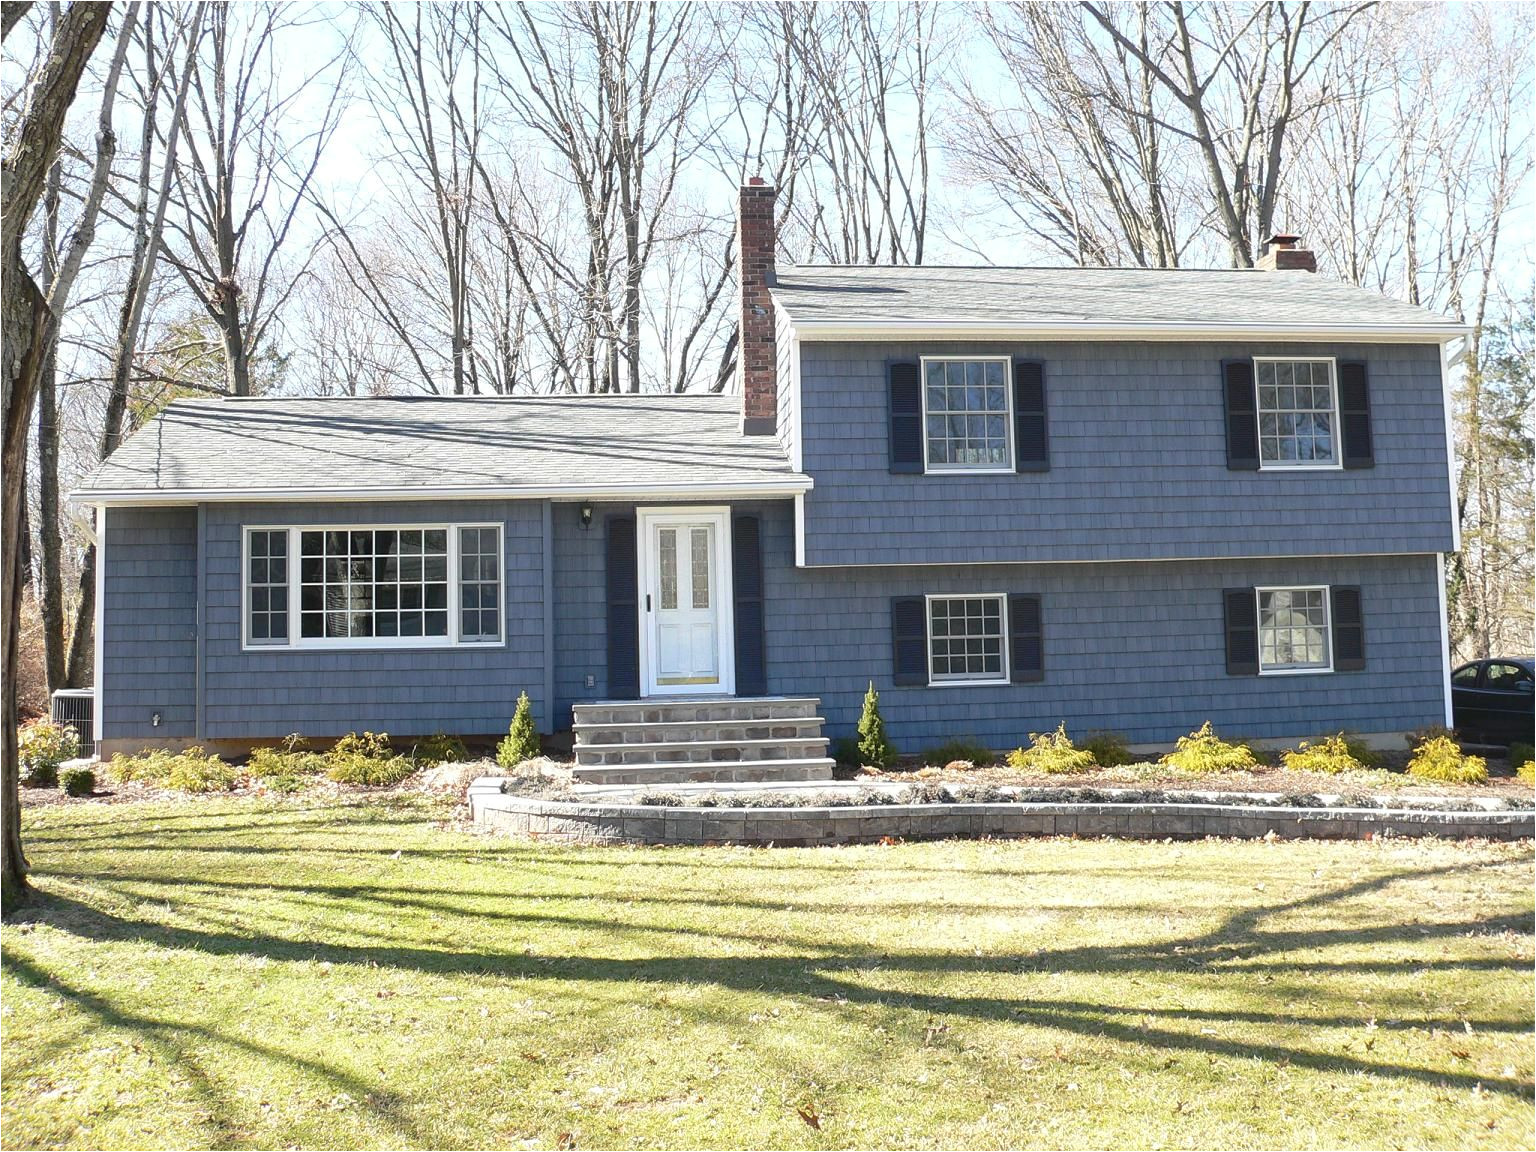 vinyl siding louvered black shutters thermatru smooth star front entry door new masonry porch bluestone treads cultured stone risers concrete slab